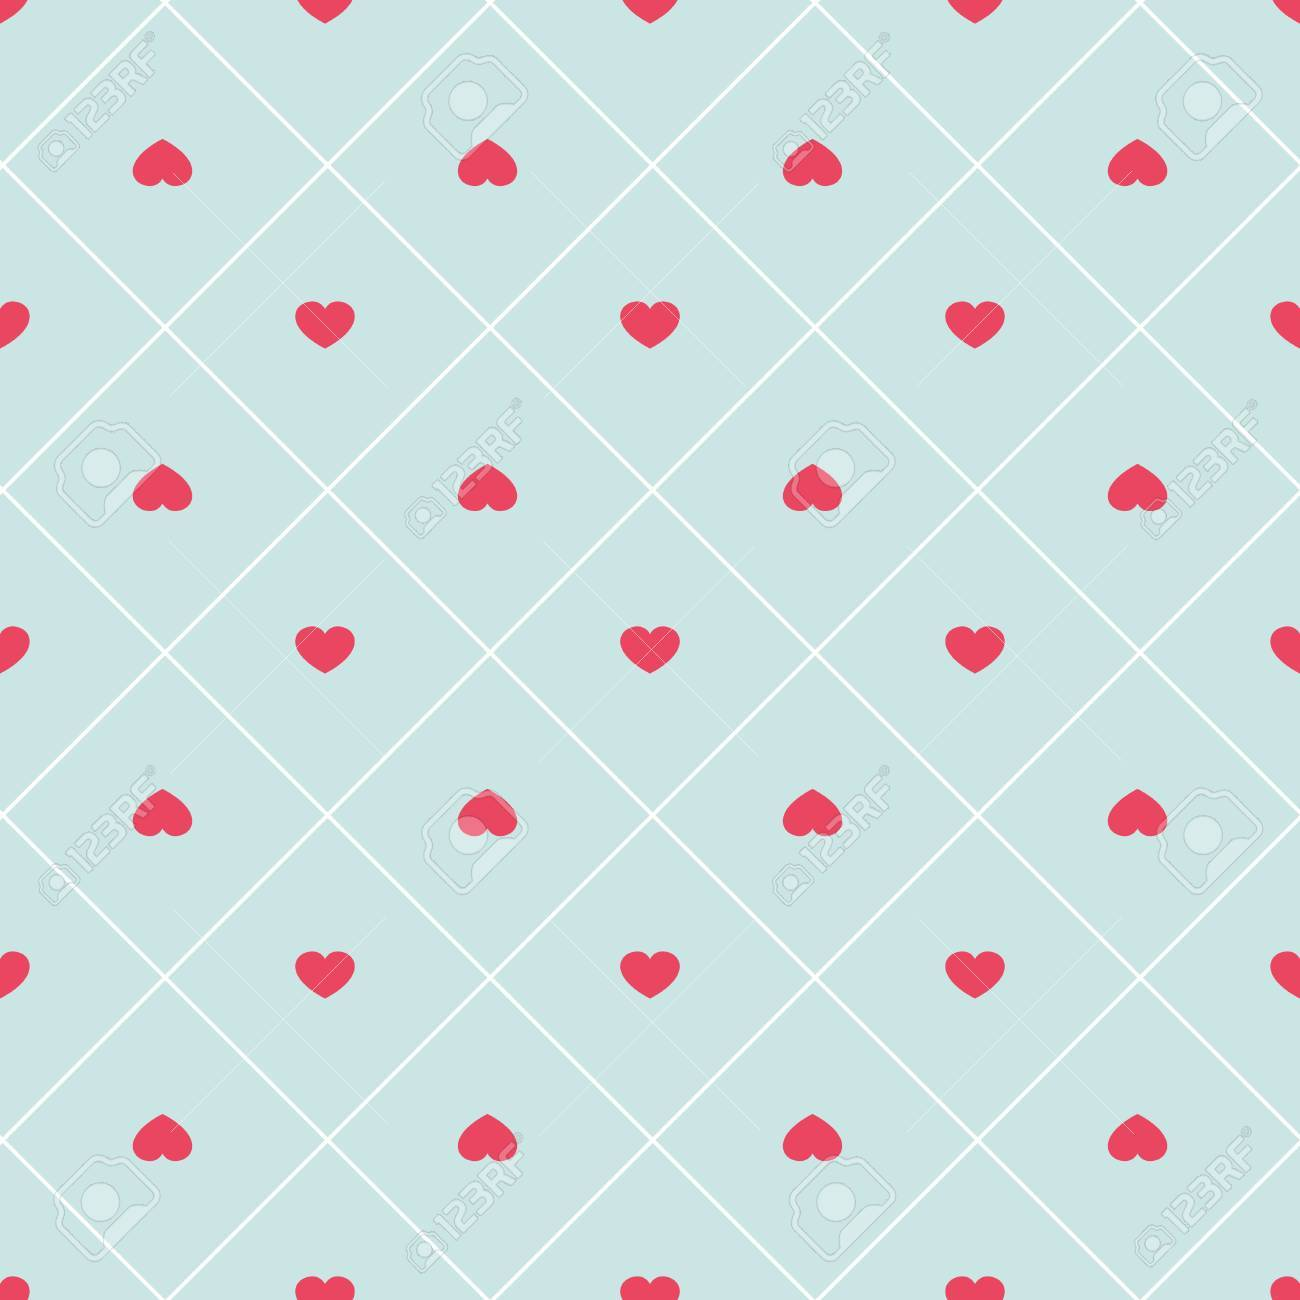 Cute retro abstract heart seamless pattern. - 51311200